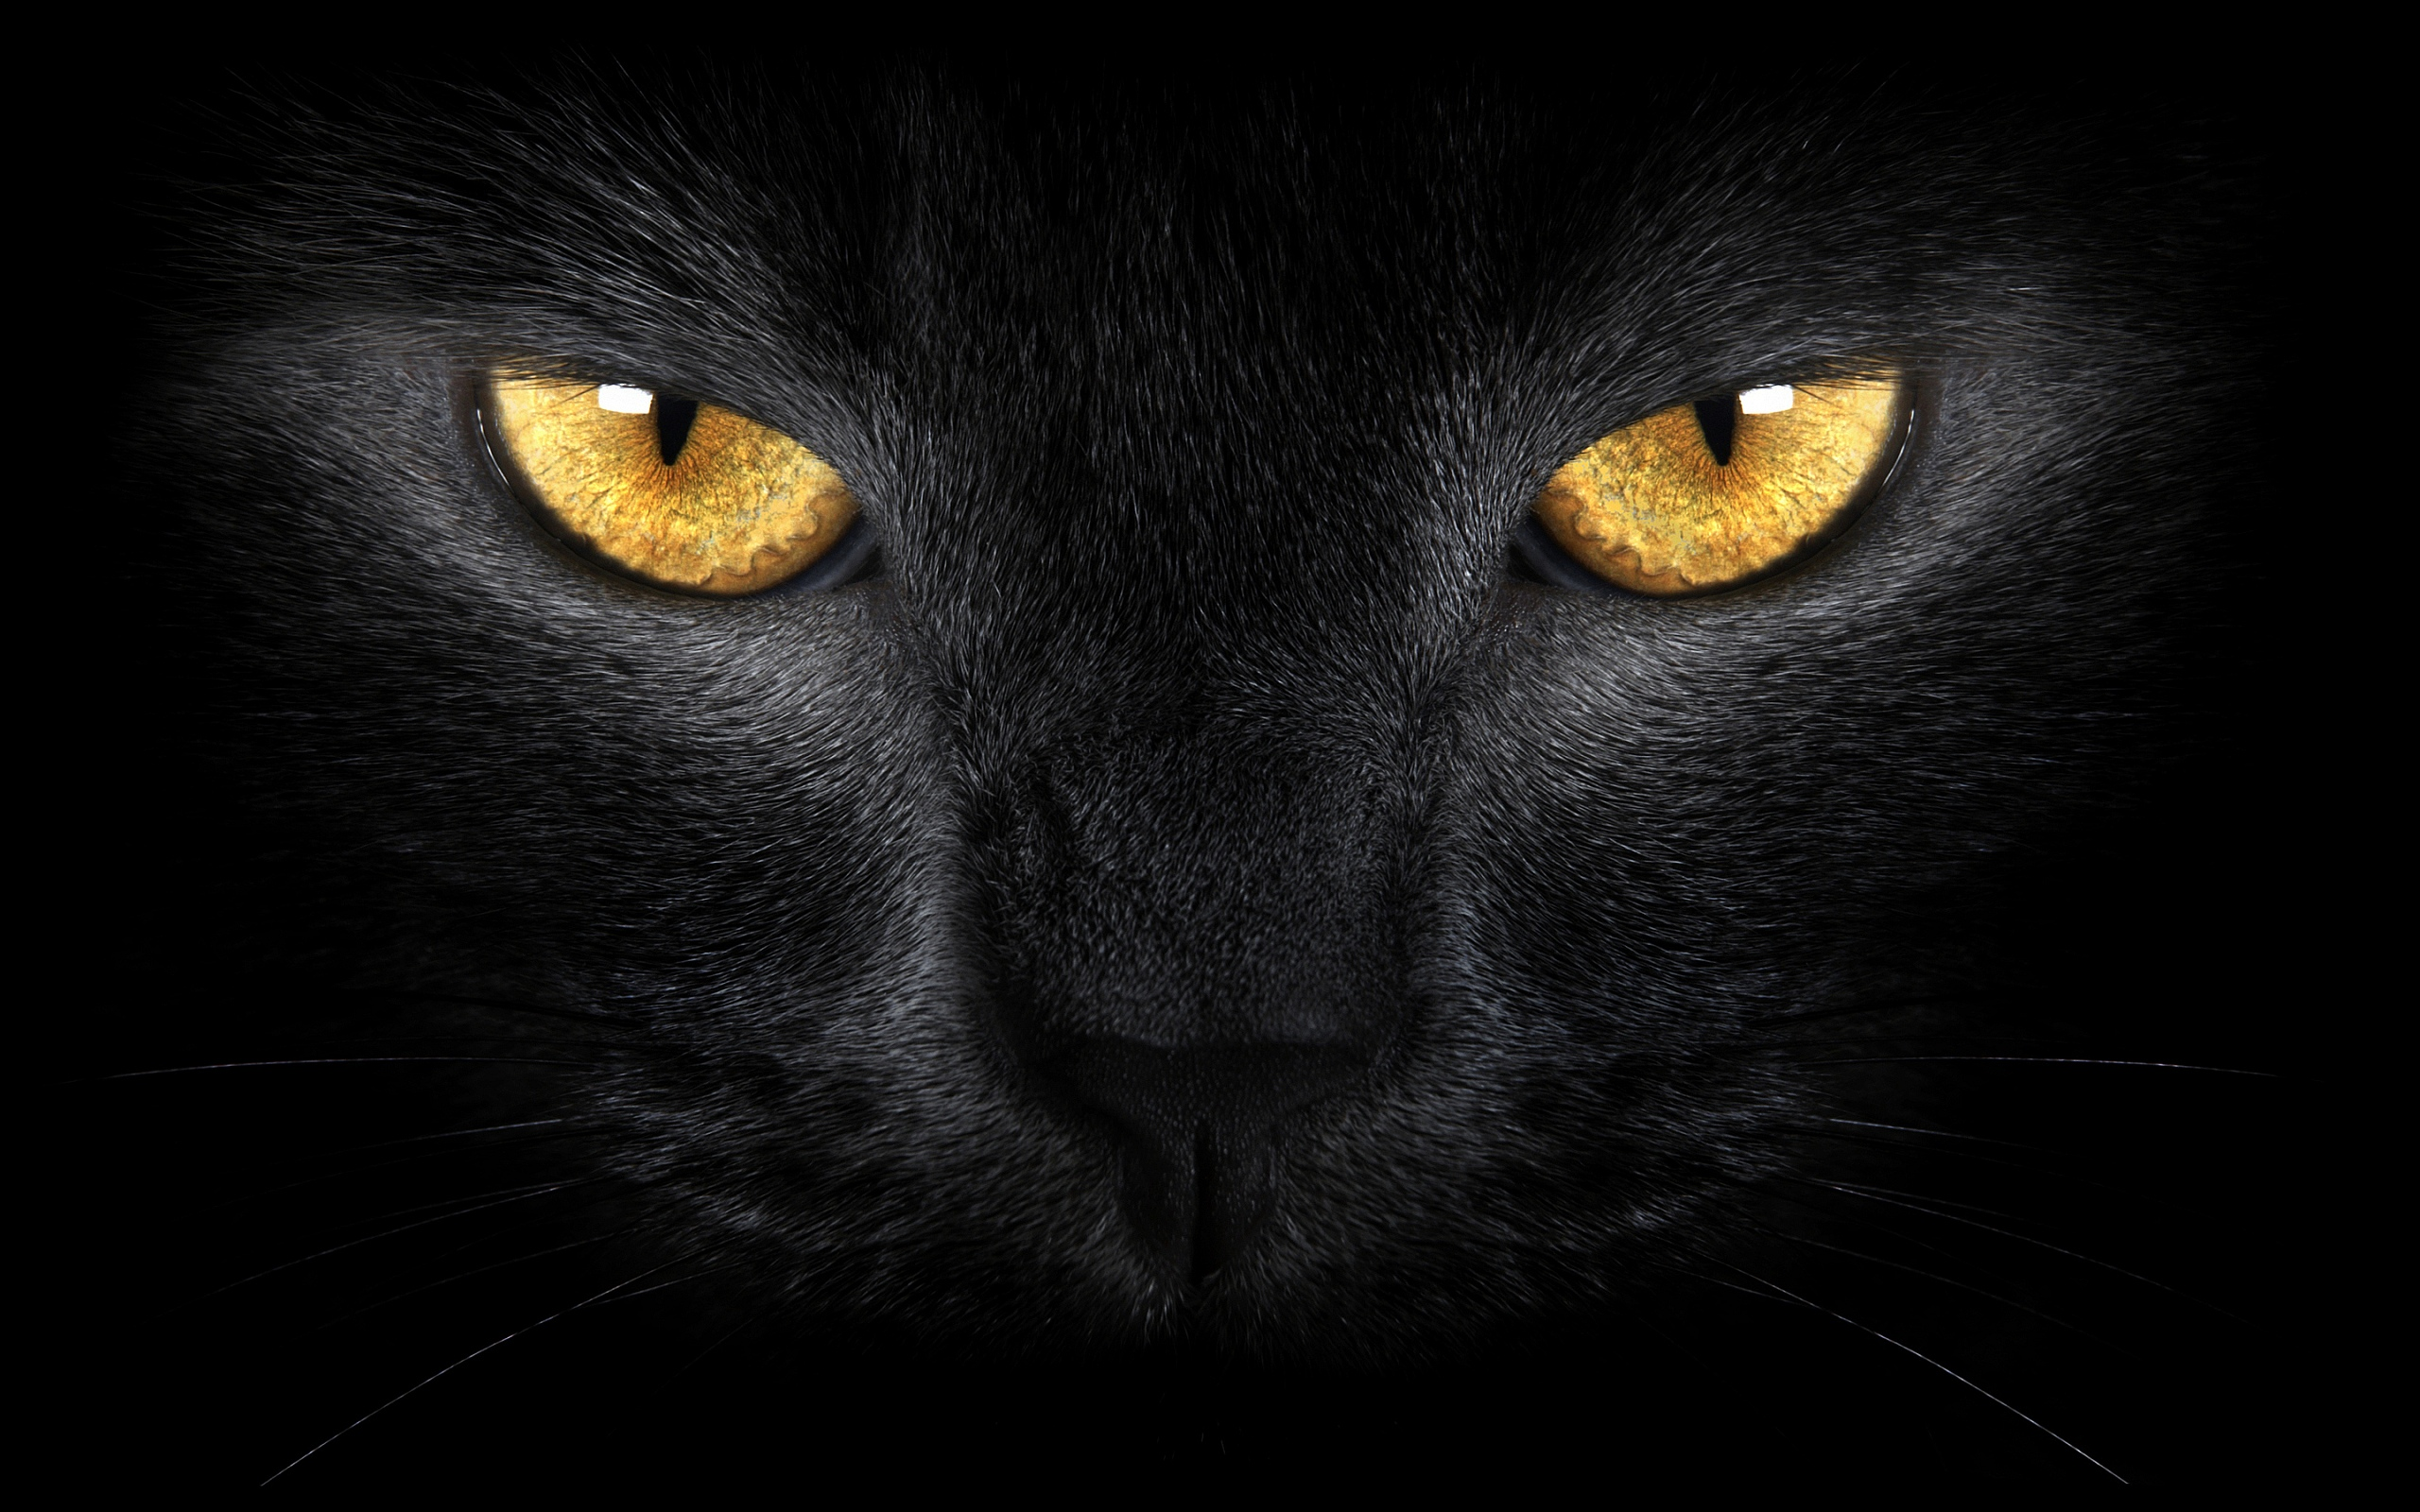 Black Cat Eyes Wallpapers Pictures Photos Images Wallpaper